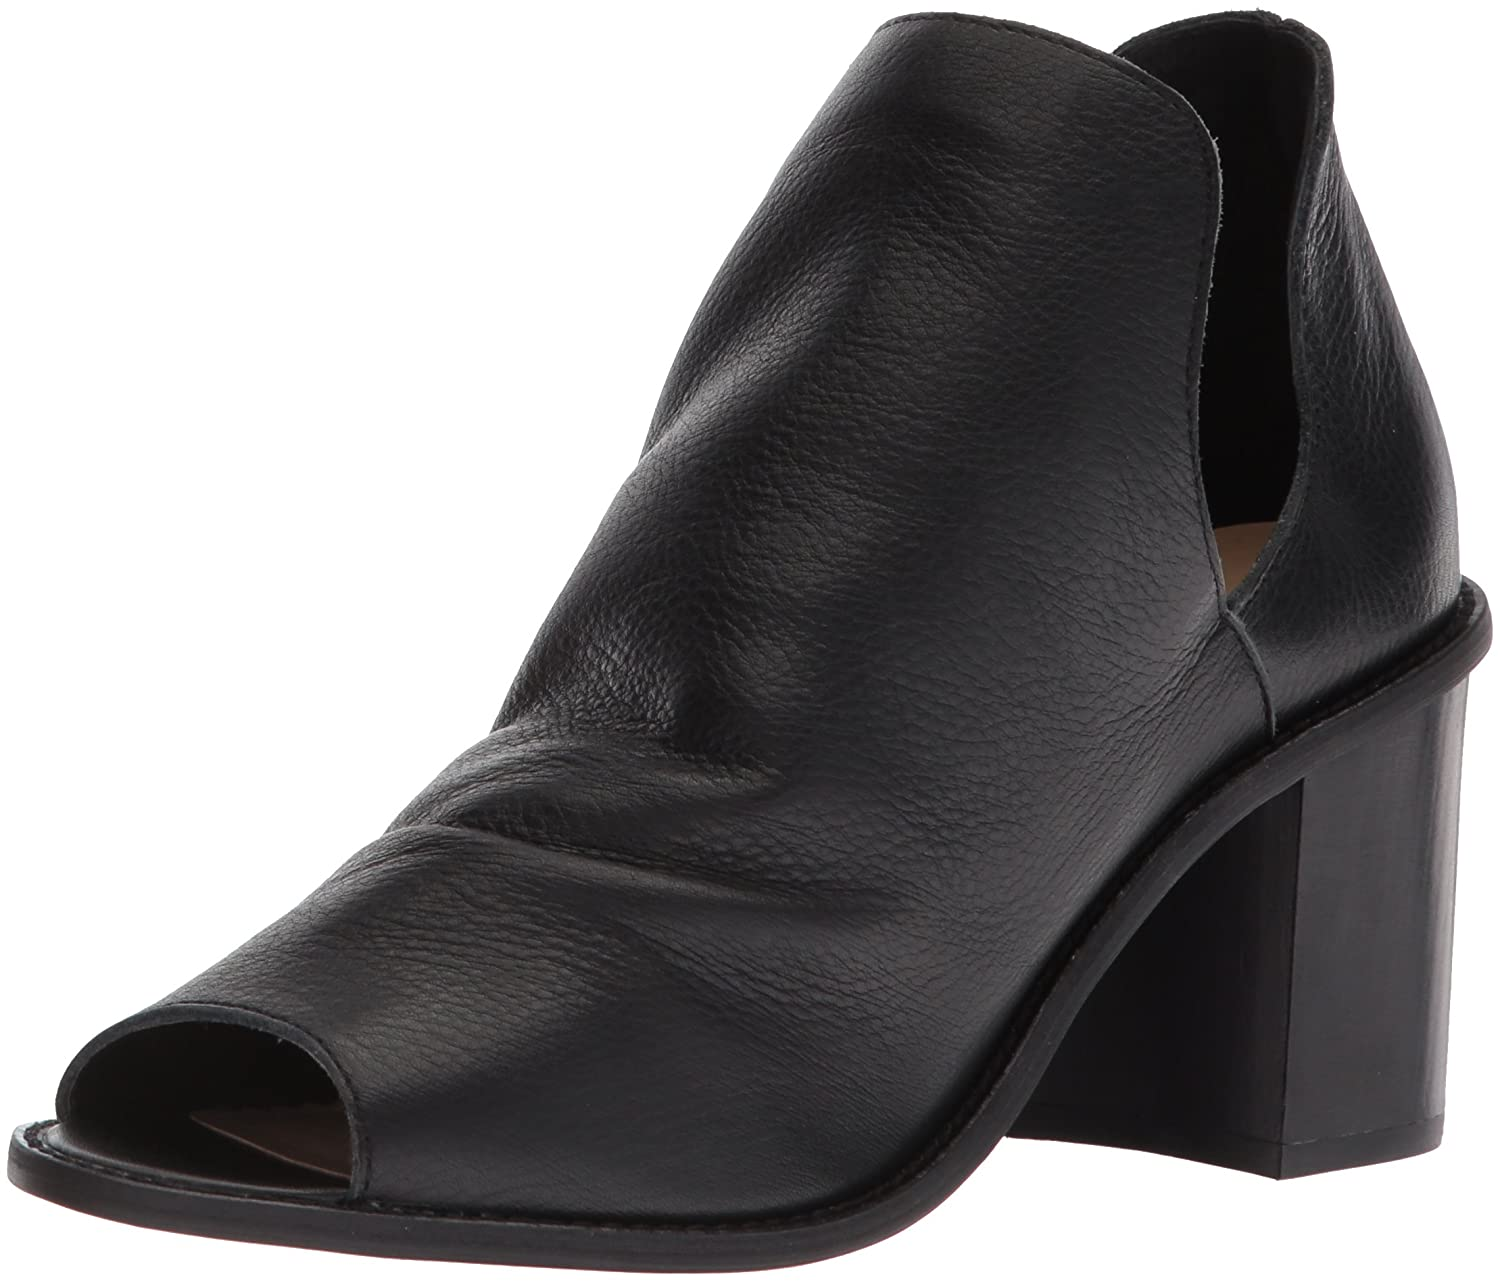 Chinese Laundry Women's Carlita Ankle Boot B076MF11FY 5.5 B(M) US|Black Leather